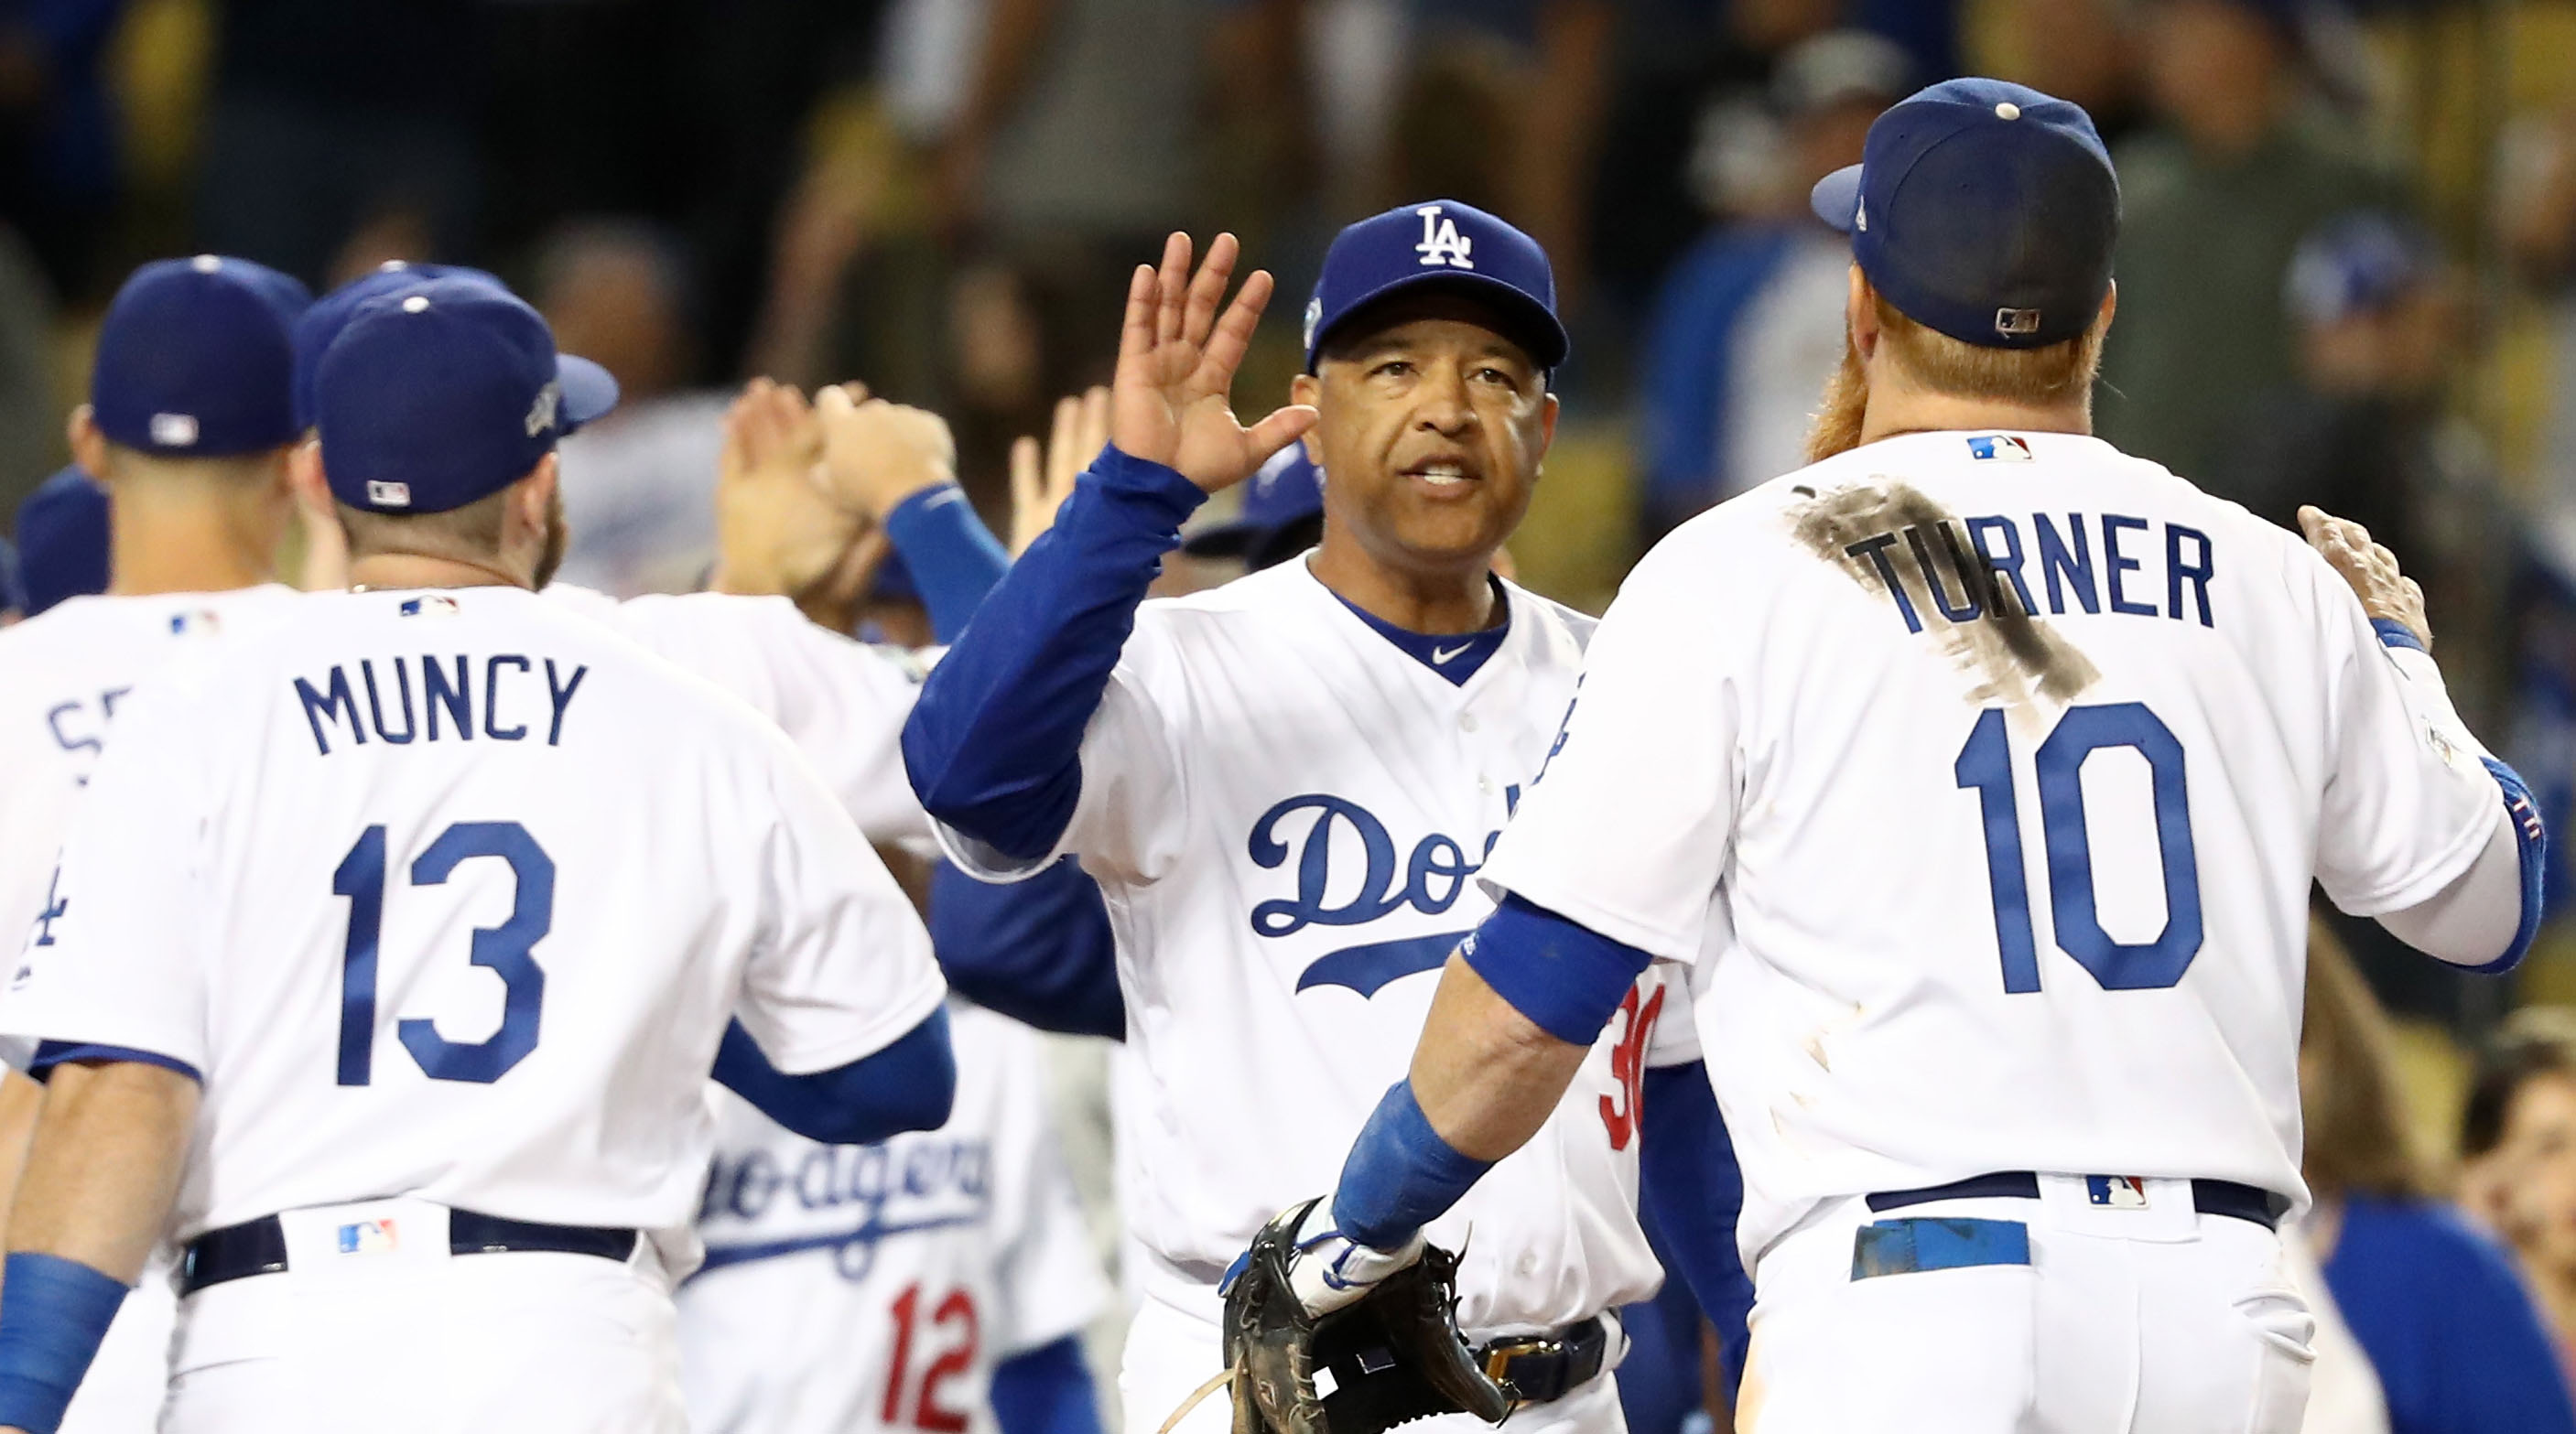 Dodgers' NLDS Game 1 Win Is Meaningless Without Winning World Series